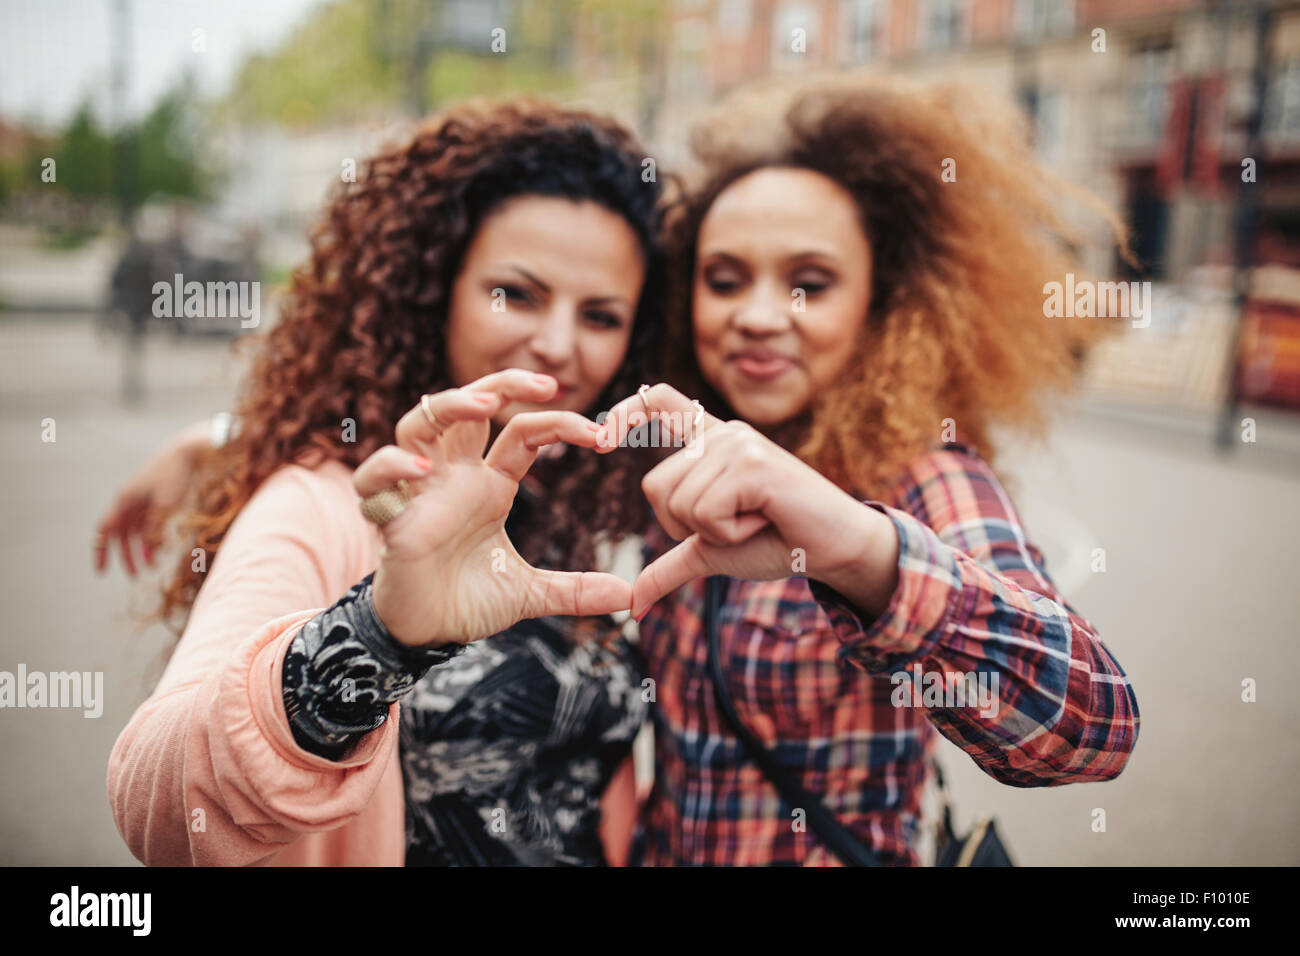 Happy young female friends making heart shape with hands and fingers. Two women standing together outdoors on city - Stock Image